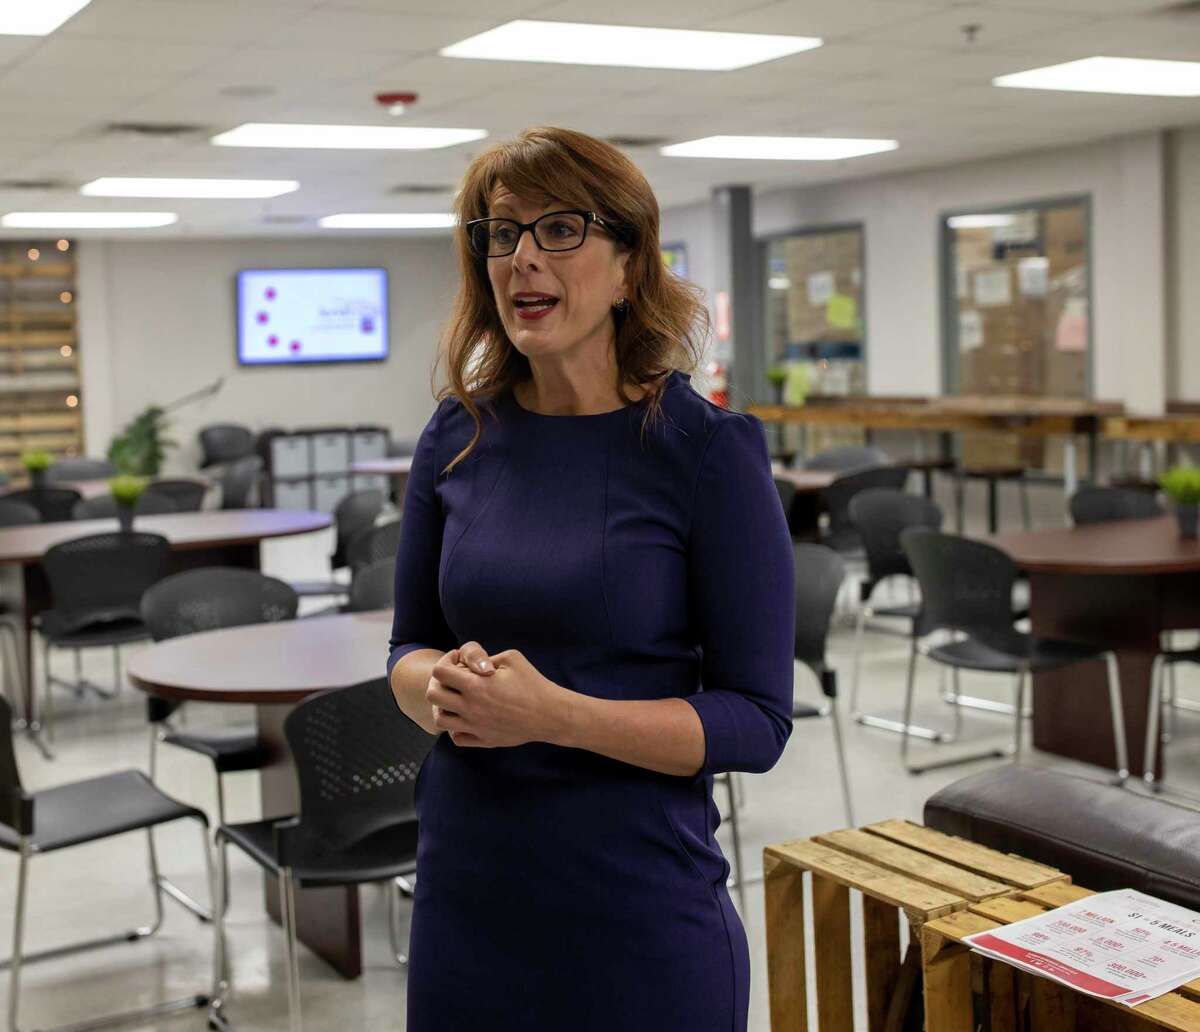 Allison Hulett, former the President and CEO of the Montgomery County Food Bank, speaks inside the volunteer lounge in Conroe, Thursday, Jan. 9, 2020. The organization's board of directors just recently announced the search for Hulett's successor.